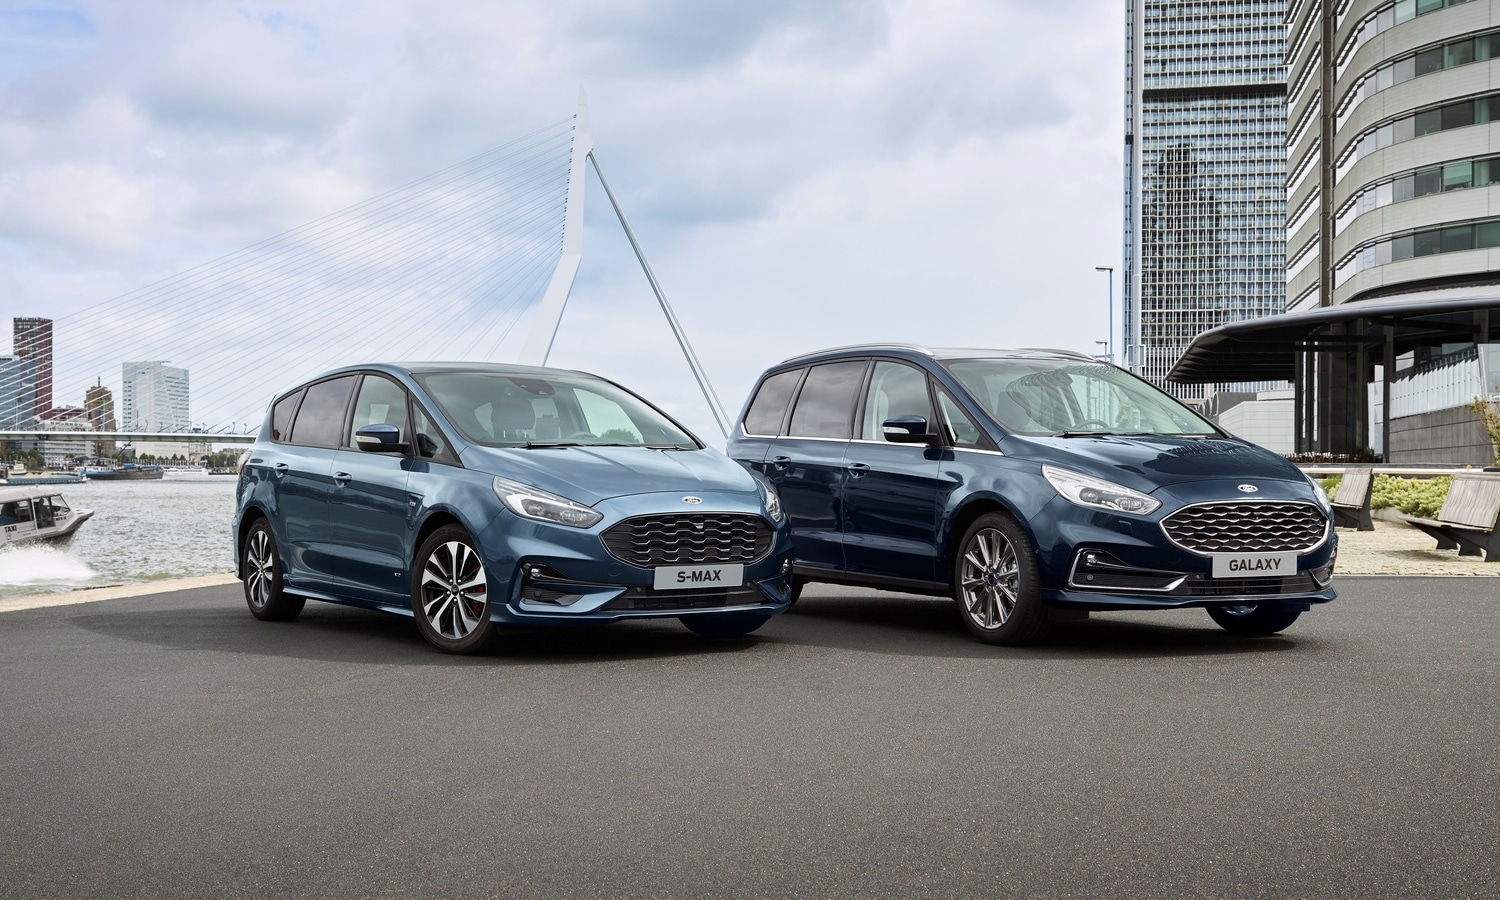 Ford S-MAX 2020 - Ford Galaxy 2020